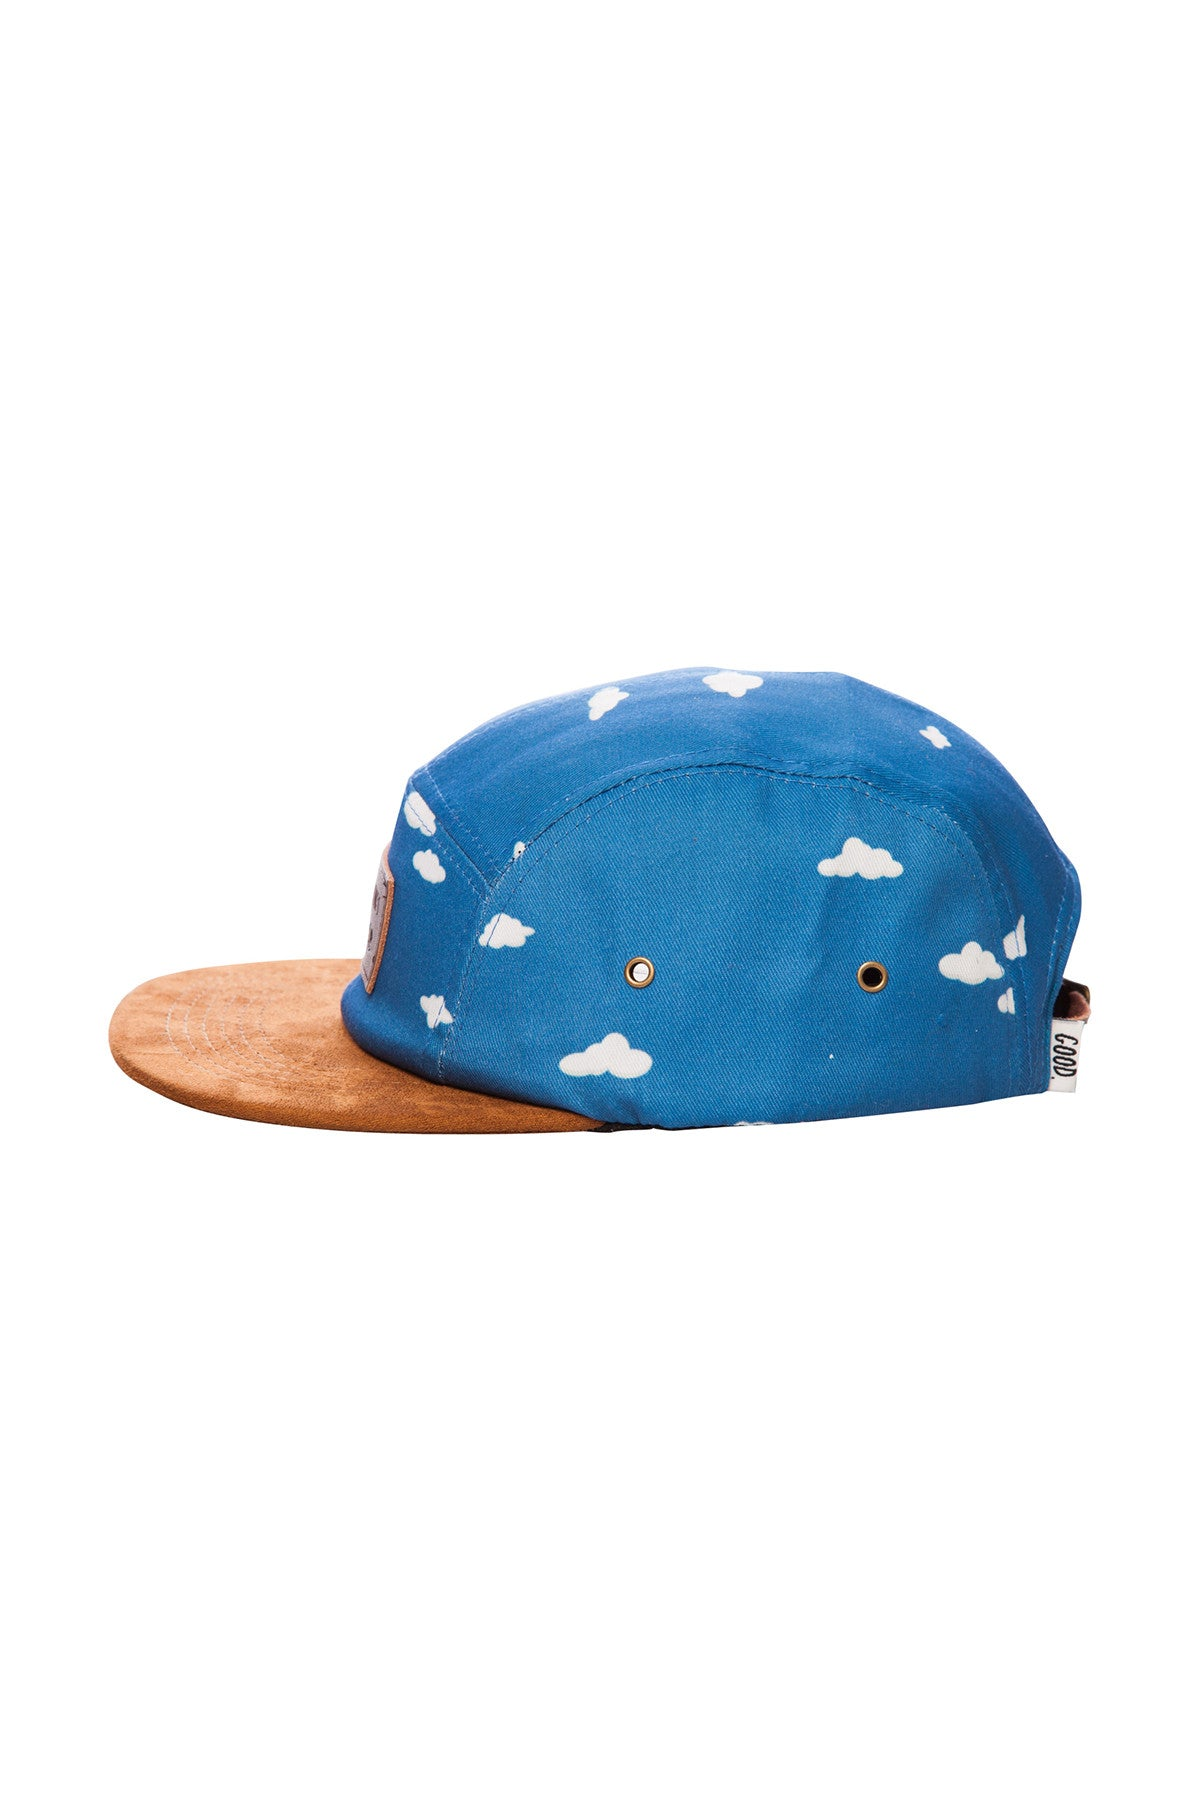 Head in the Clouds // 5-Panel Cap